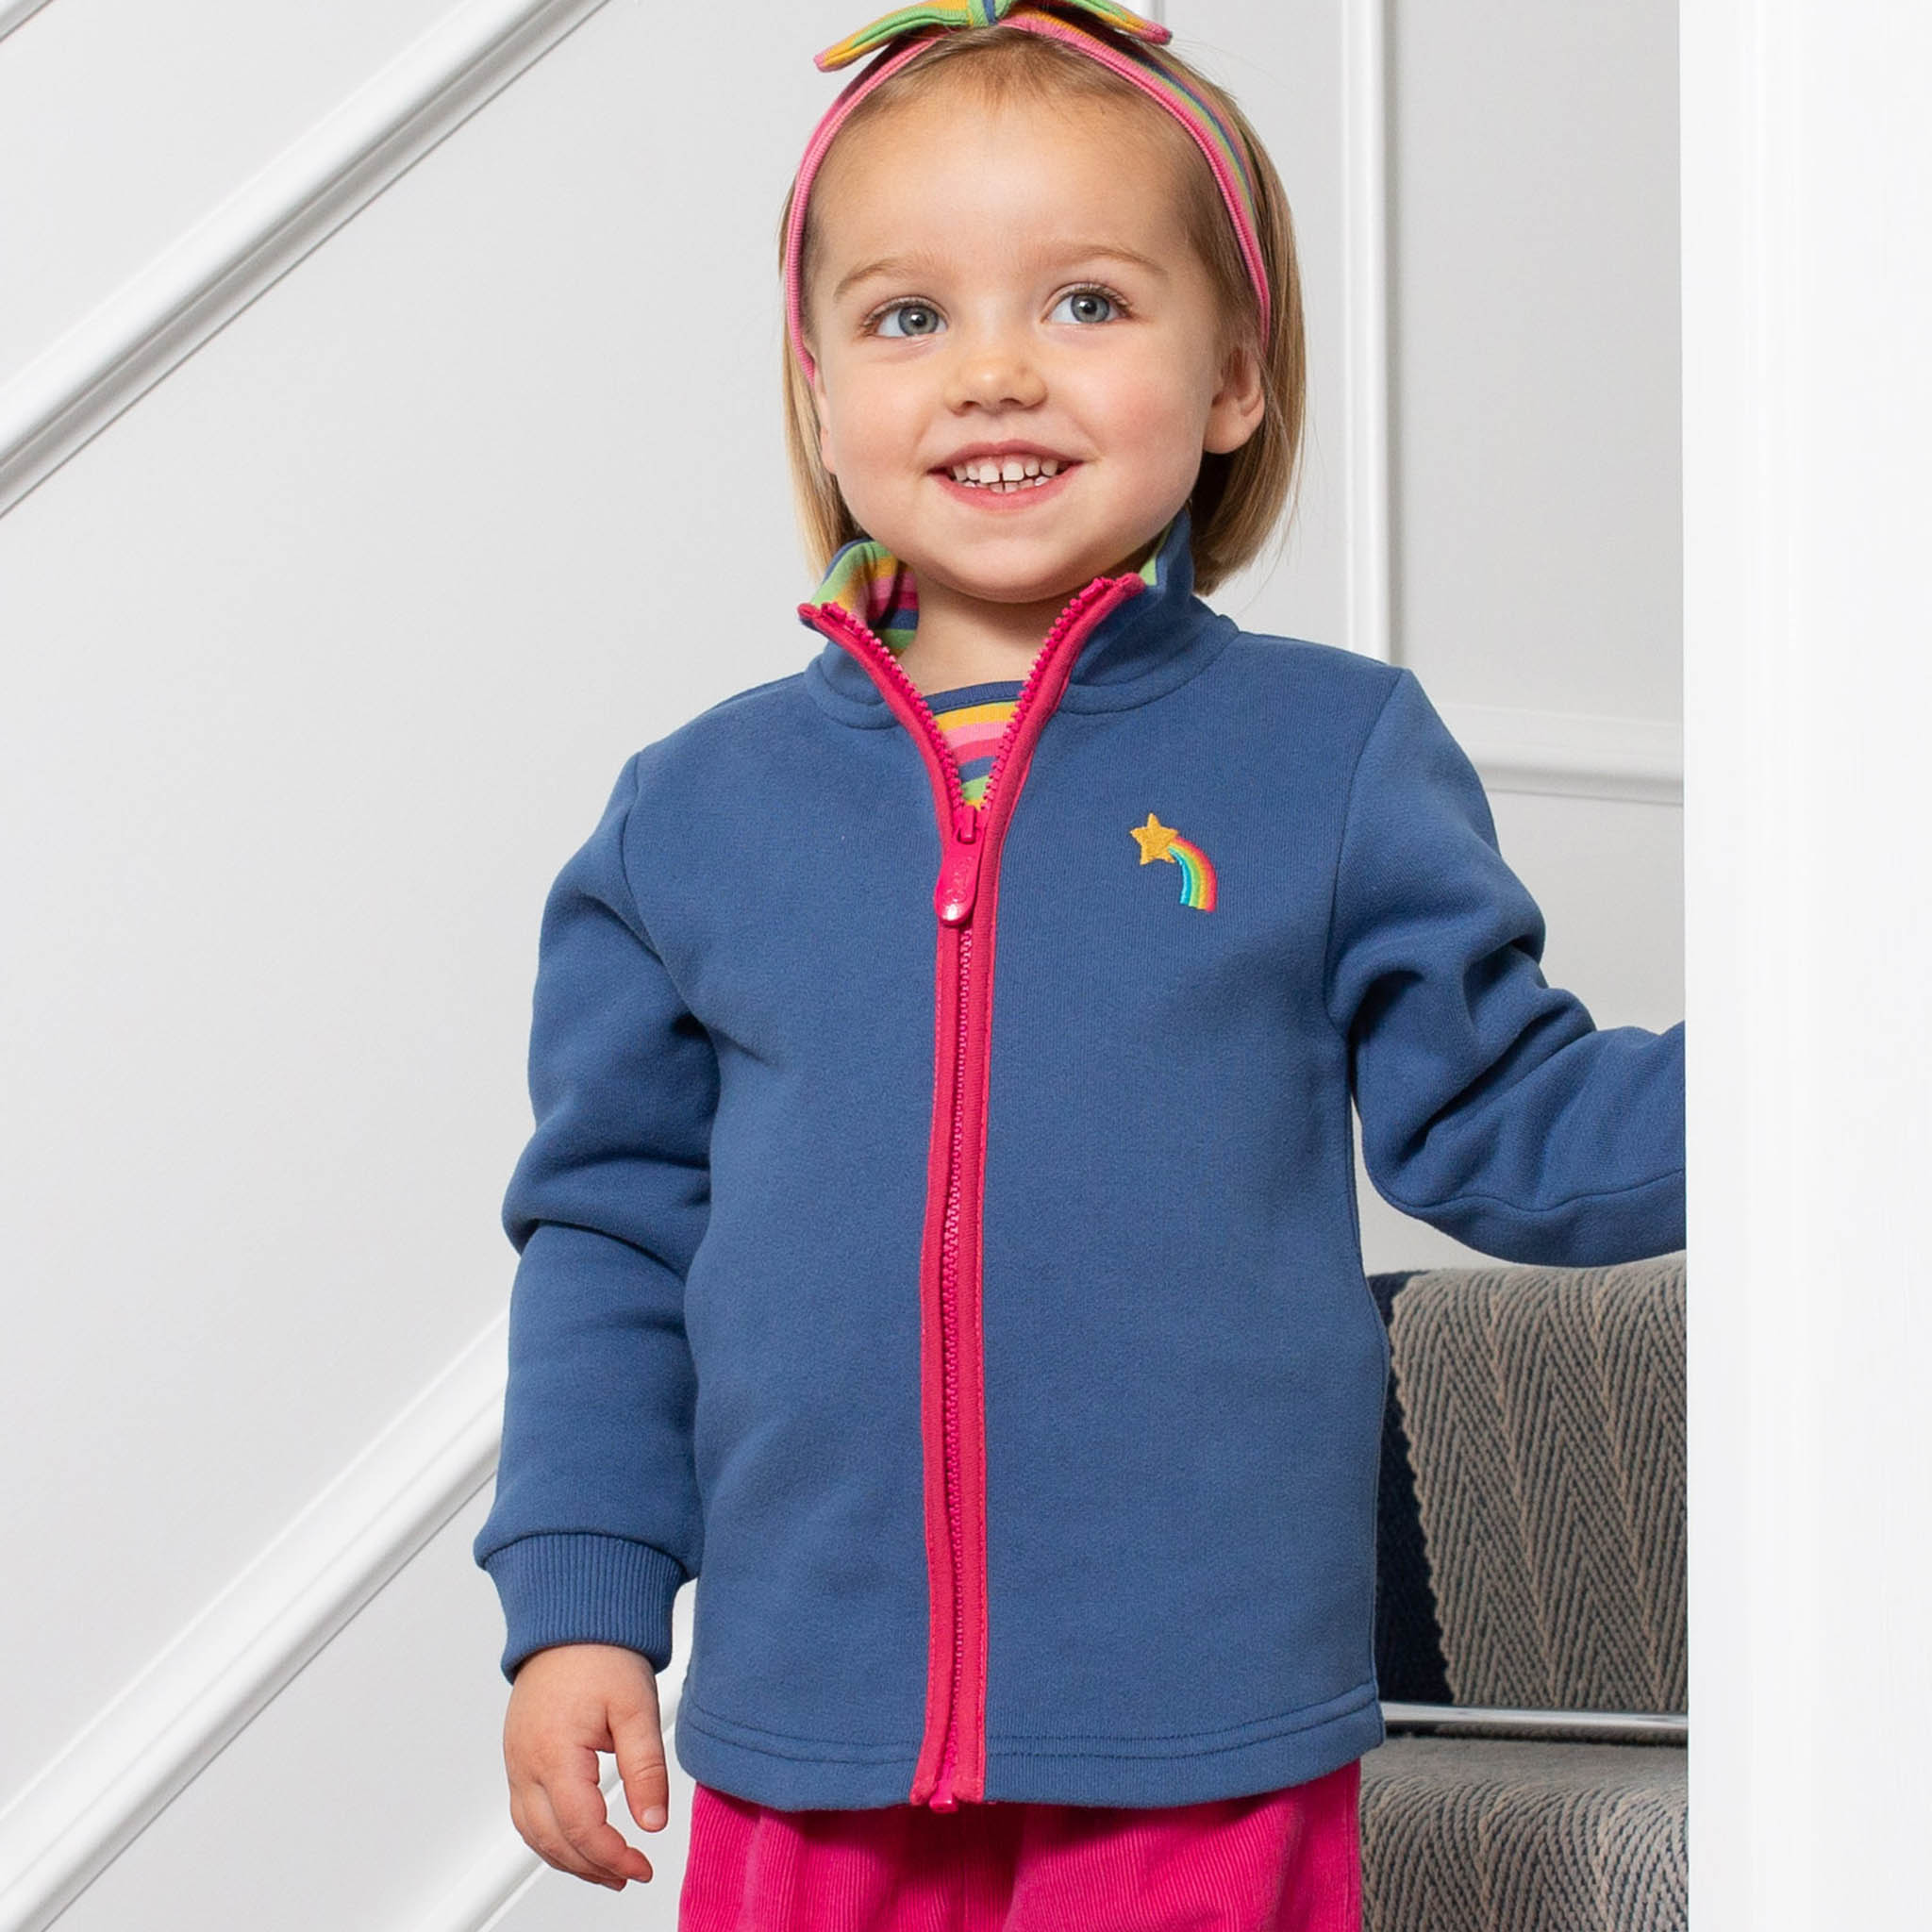 SALE £24.00 Kite Shooting Star Zip Top (was £30.00)